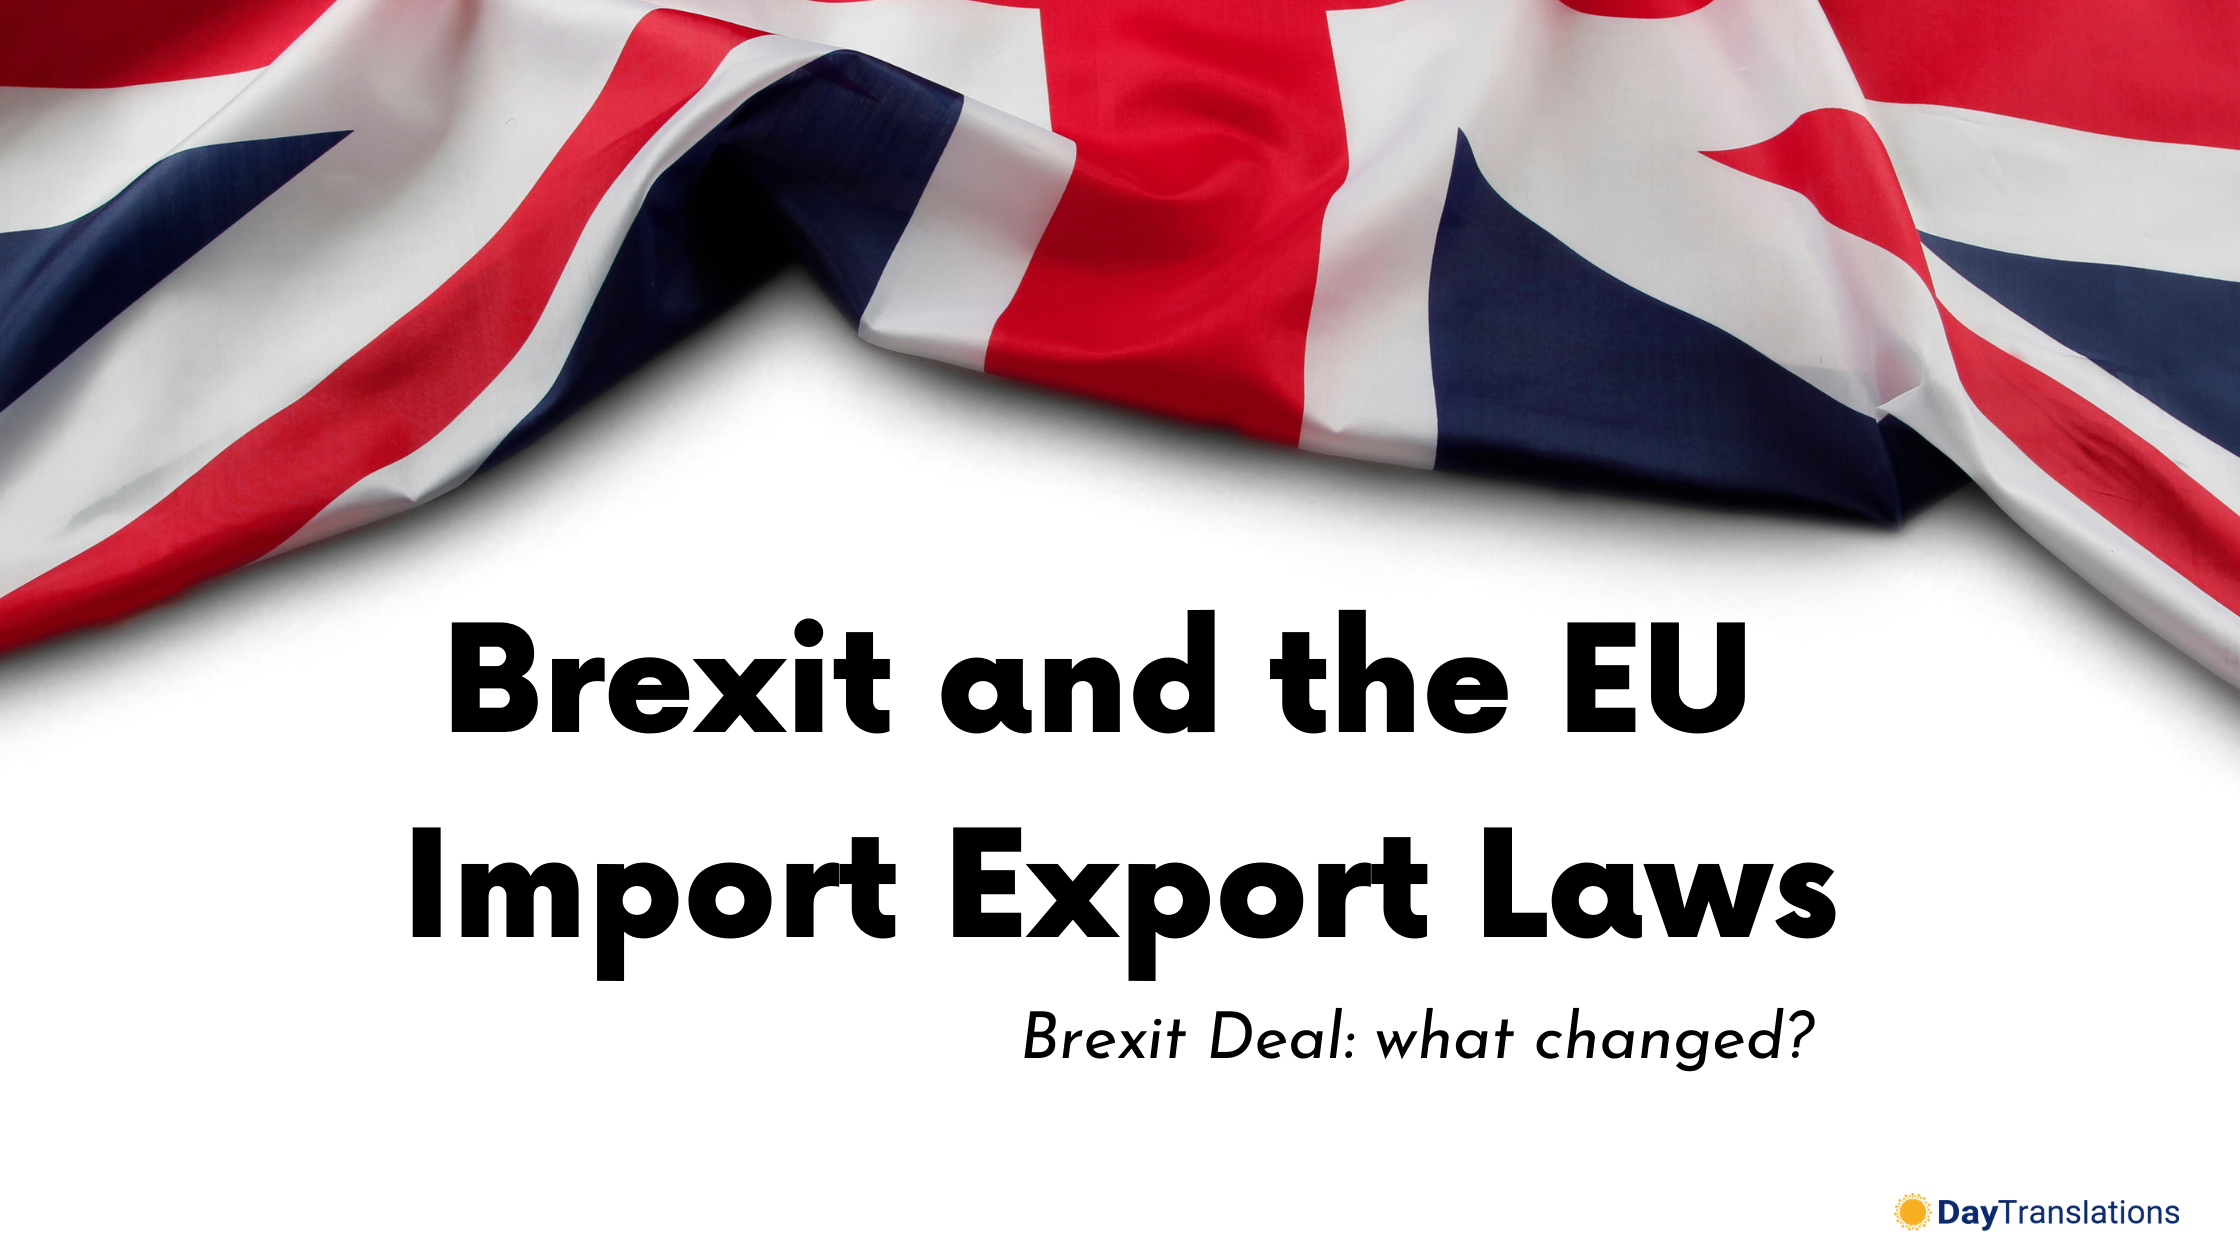 Brexit and the EU Import Export Laws